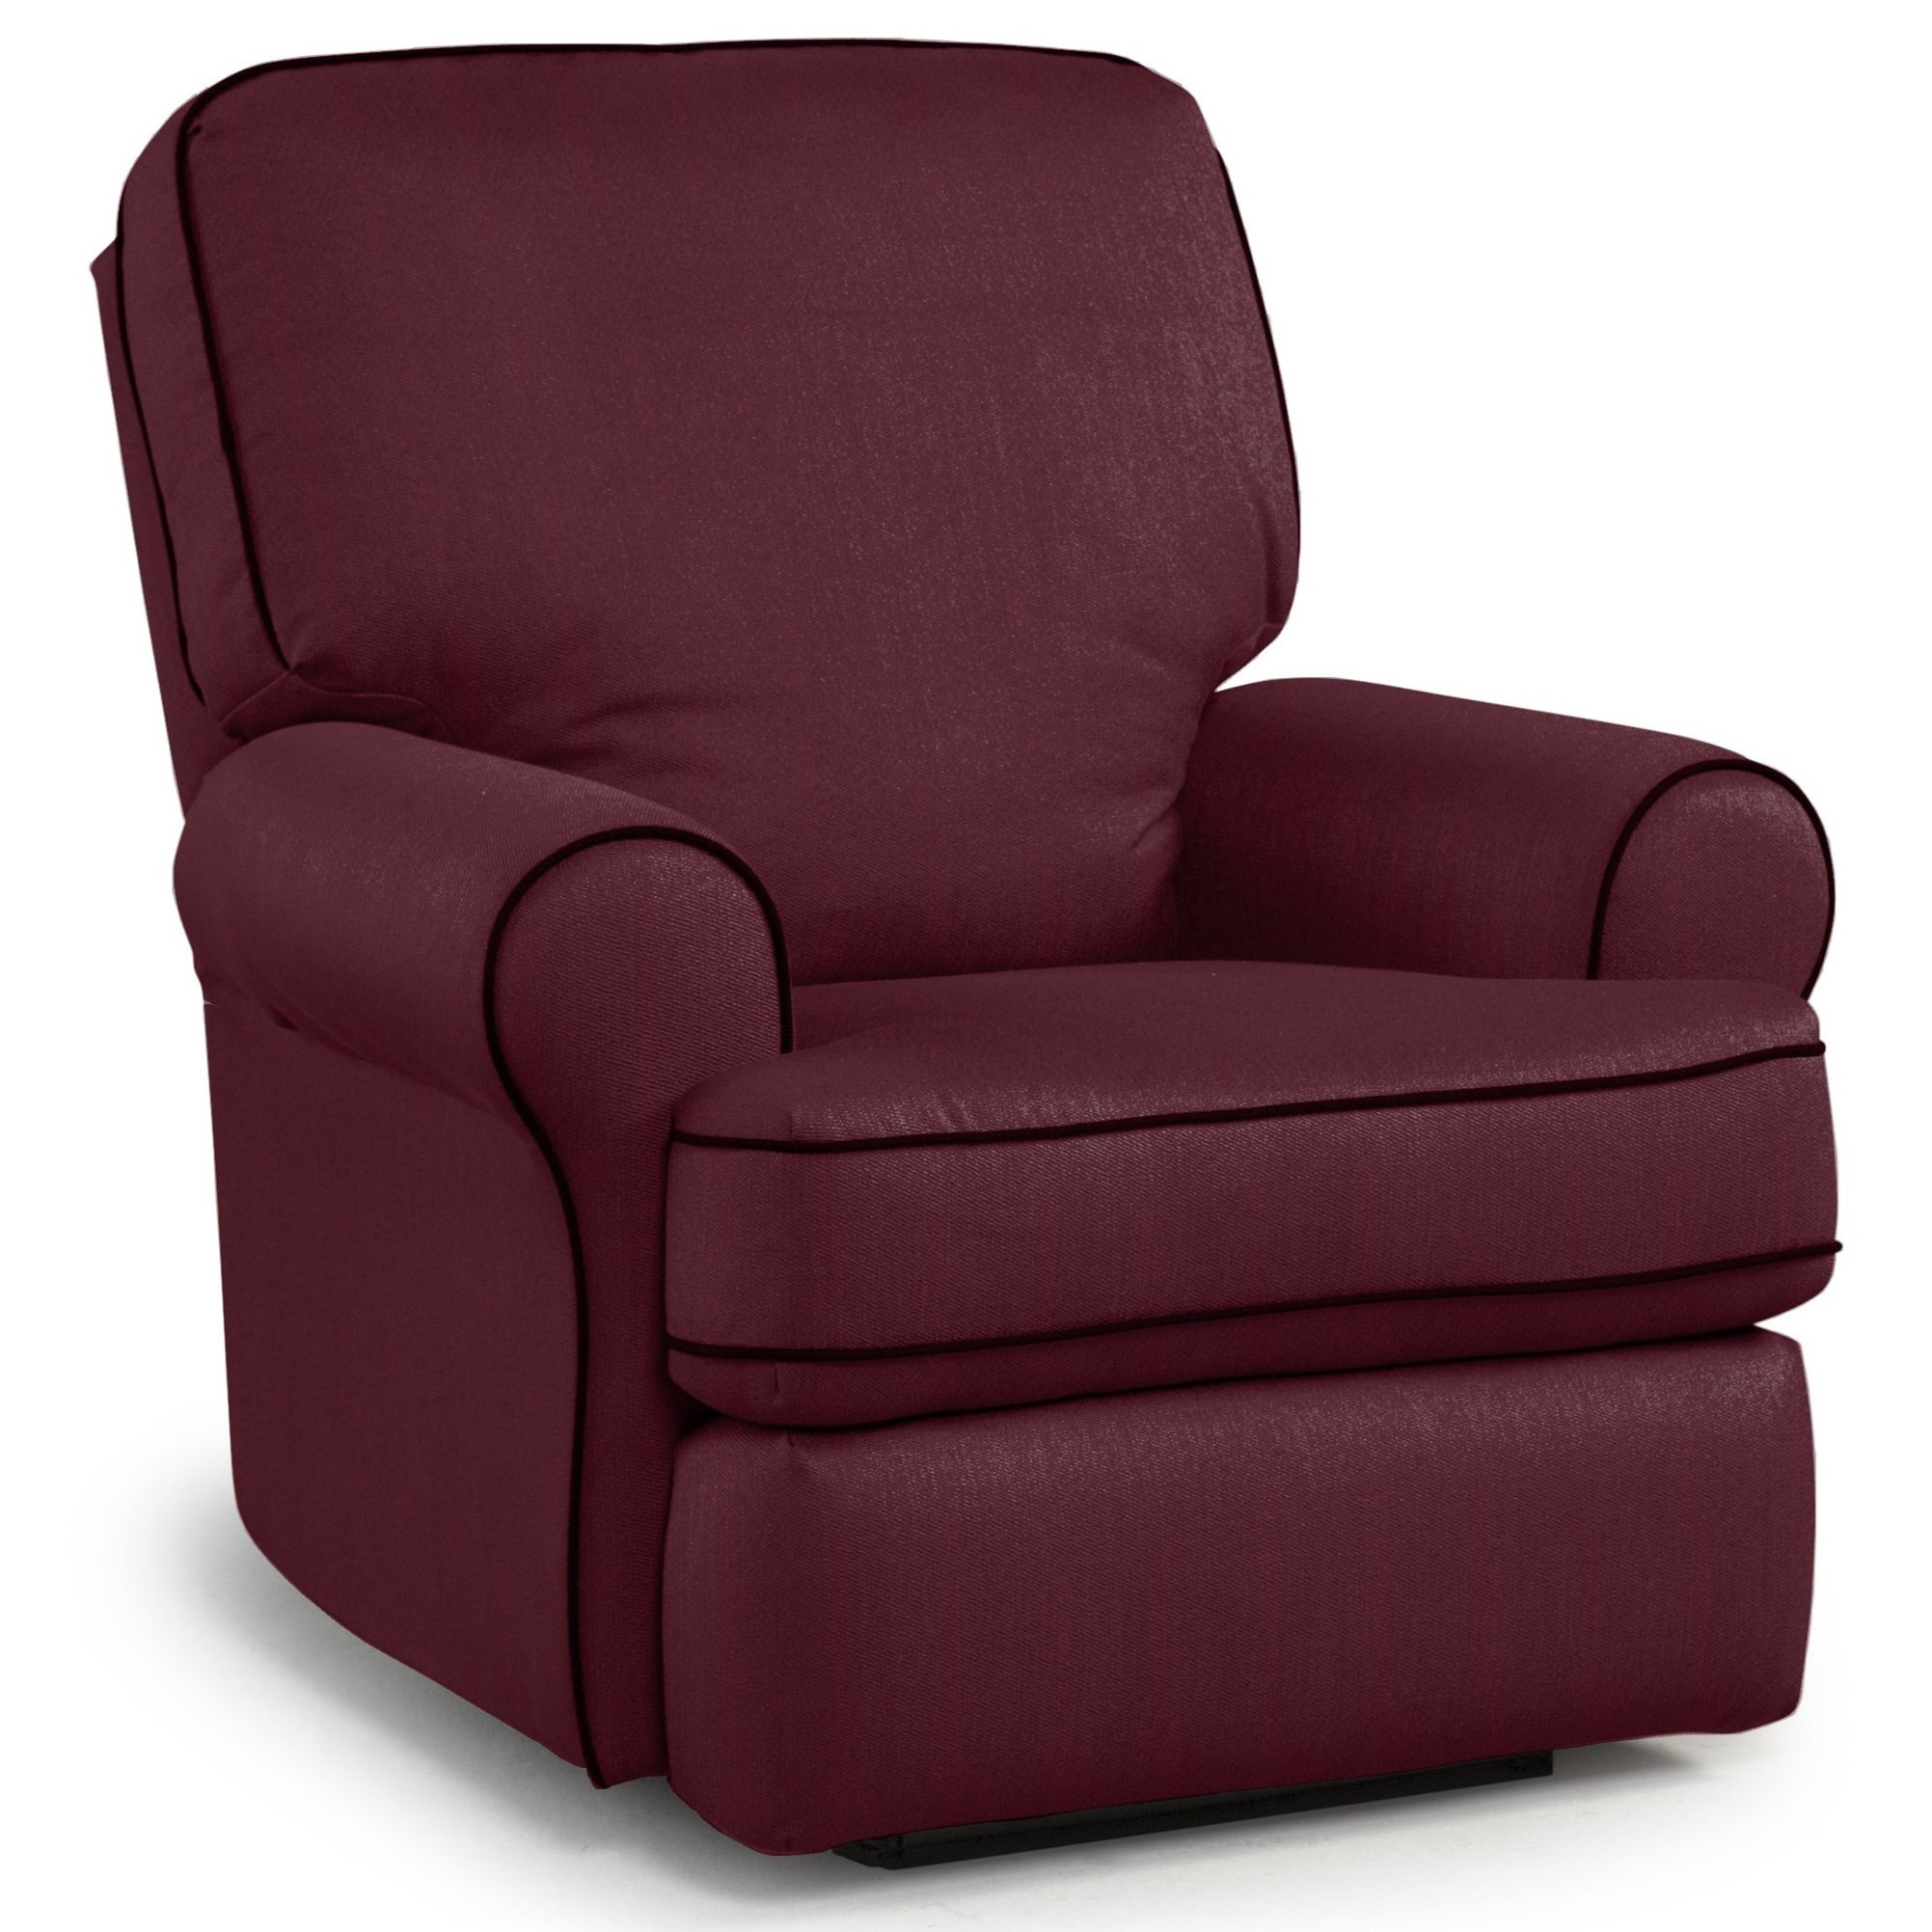 Tryp Power Swivel Glider Recliner by Best Home Furnishings at Suburban Furniture